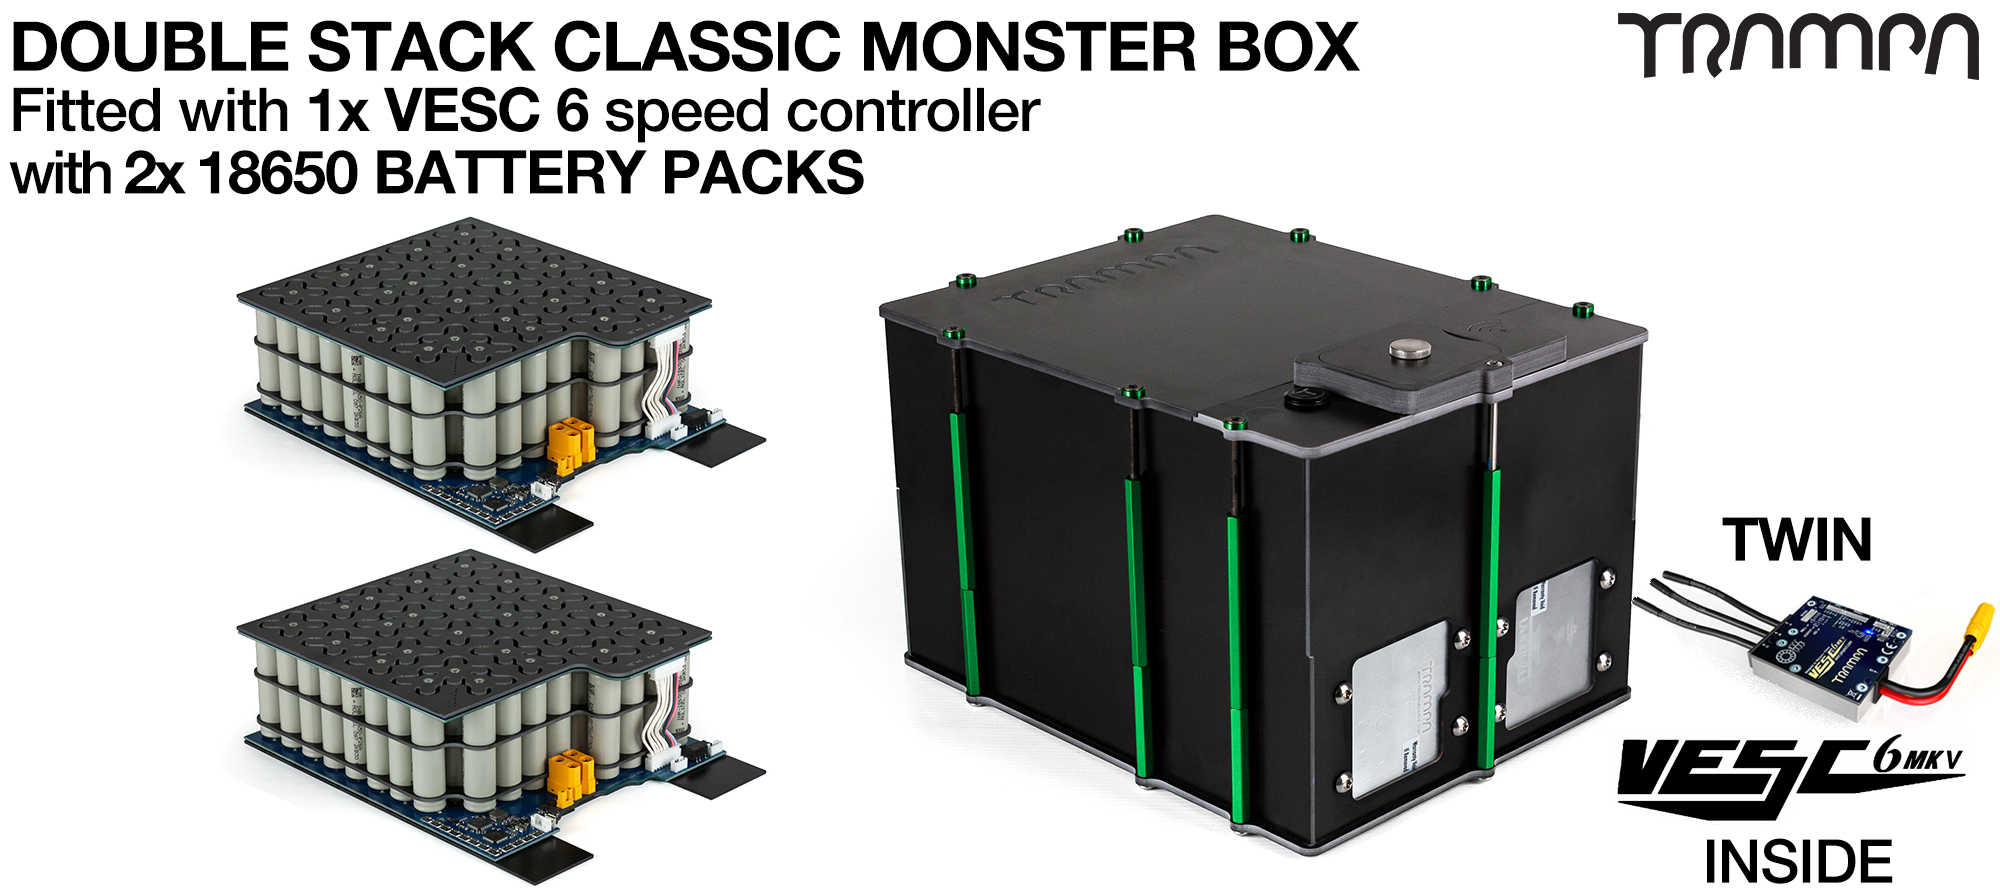 Classic MONSTER Box MkV DOUBLE STACKER - with 18650 PCB Pack, 2x VESC 6 with NRF & 84x 18650 cells 12s7p 21Ah - PCB based Battery Pack with Integrated Battery Management System (BMS) - UK CUSTOMERS ONLY